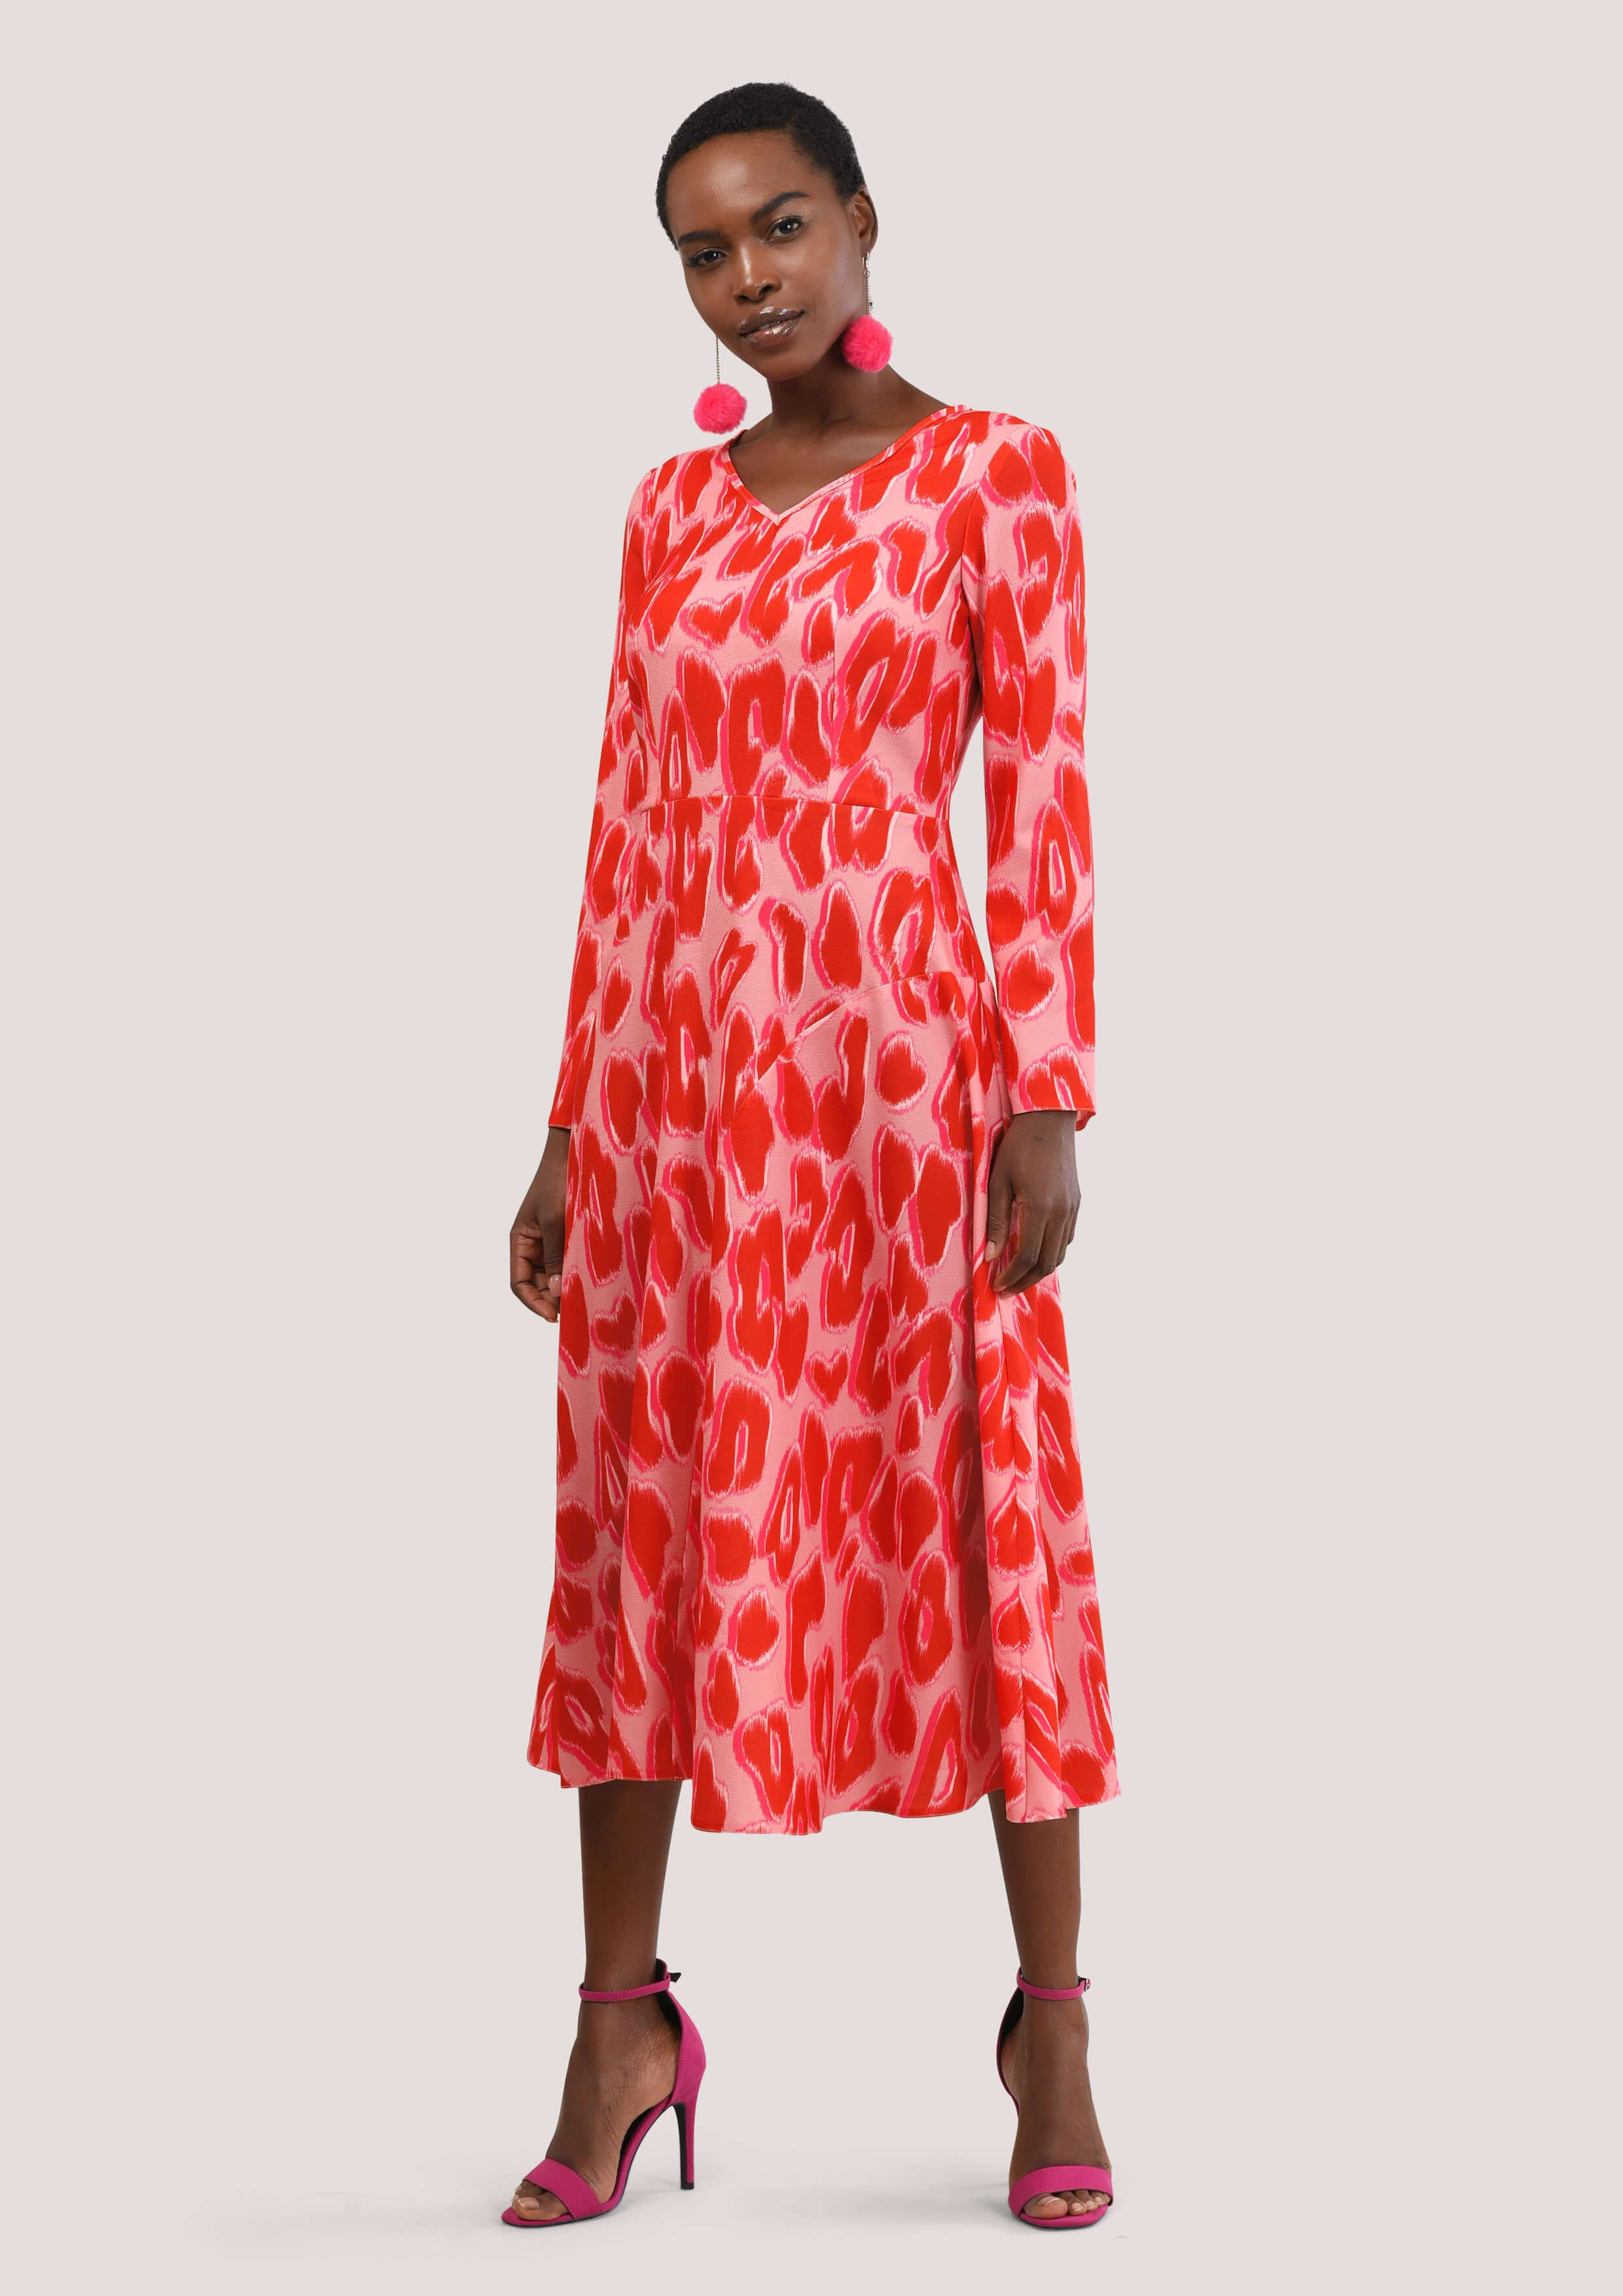 ae05de61be Pink Leopard Print Asymmetric Dress With Panel - Dresses - Clothing ...